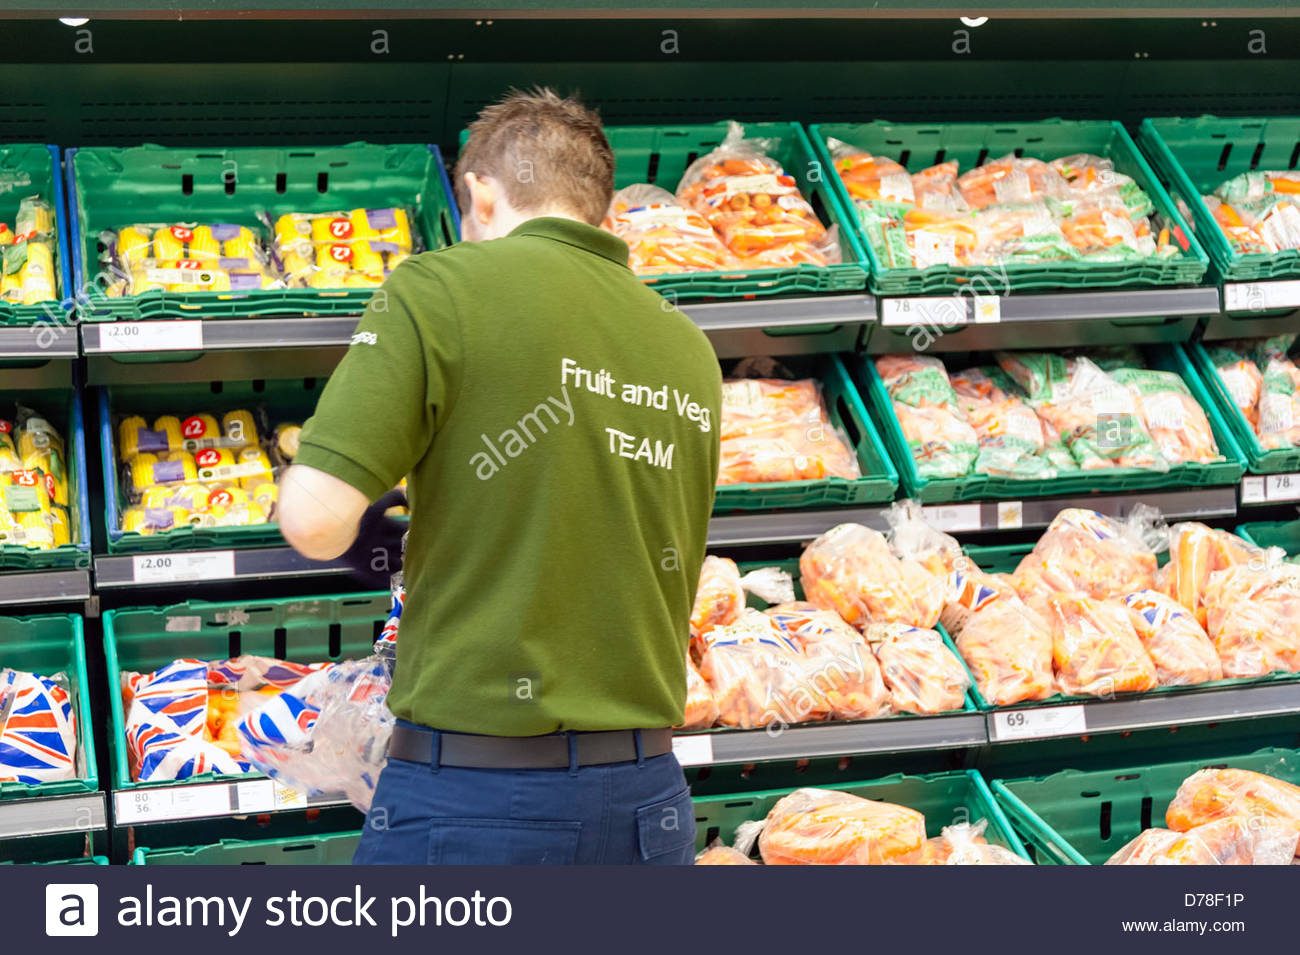 Young man stacking shelves in a Tesco store, UK. - Stock Image